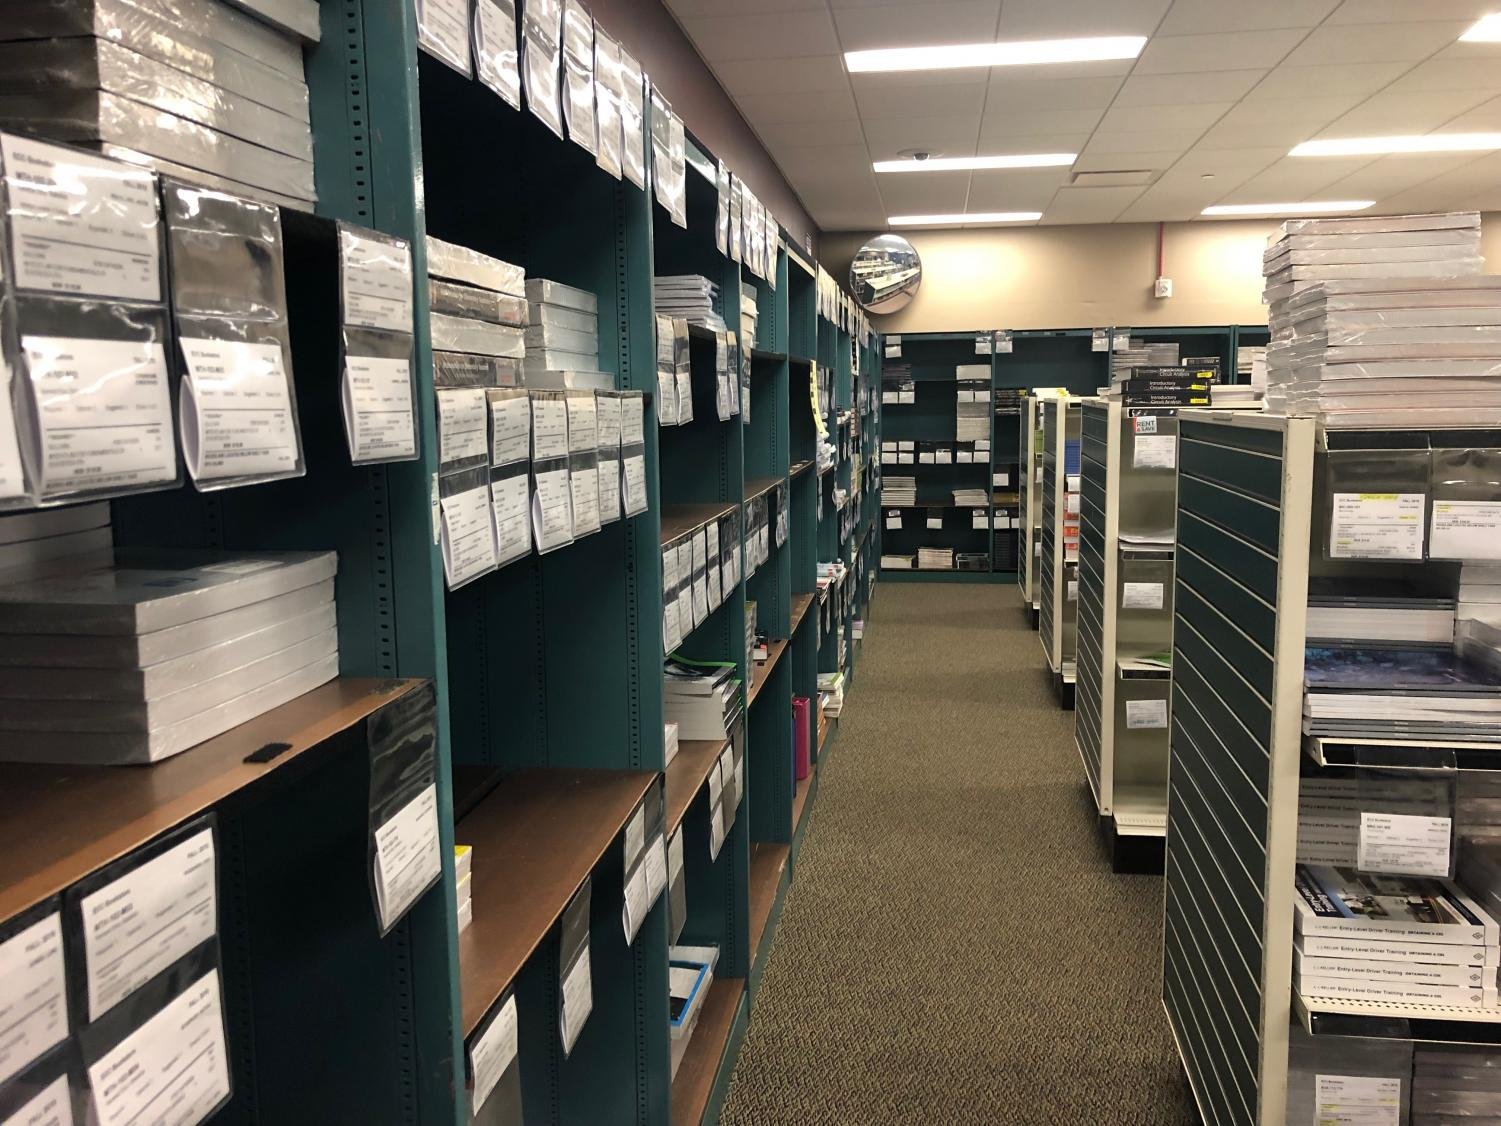 The ECC bookstore is available to all students and is open M-Th 8:00 a.m. - 7 p.m., F 8 a.m. - 4 p.m.